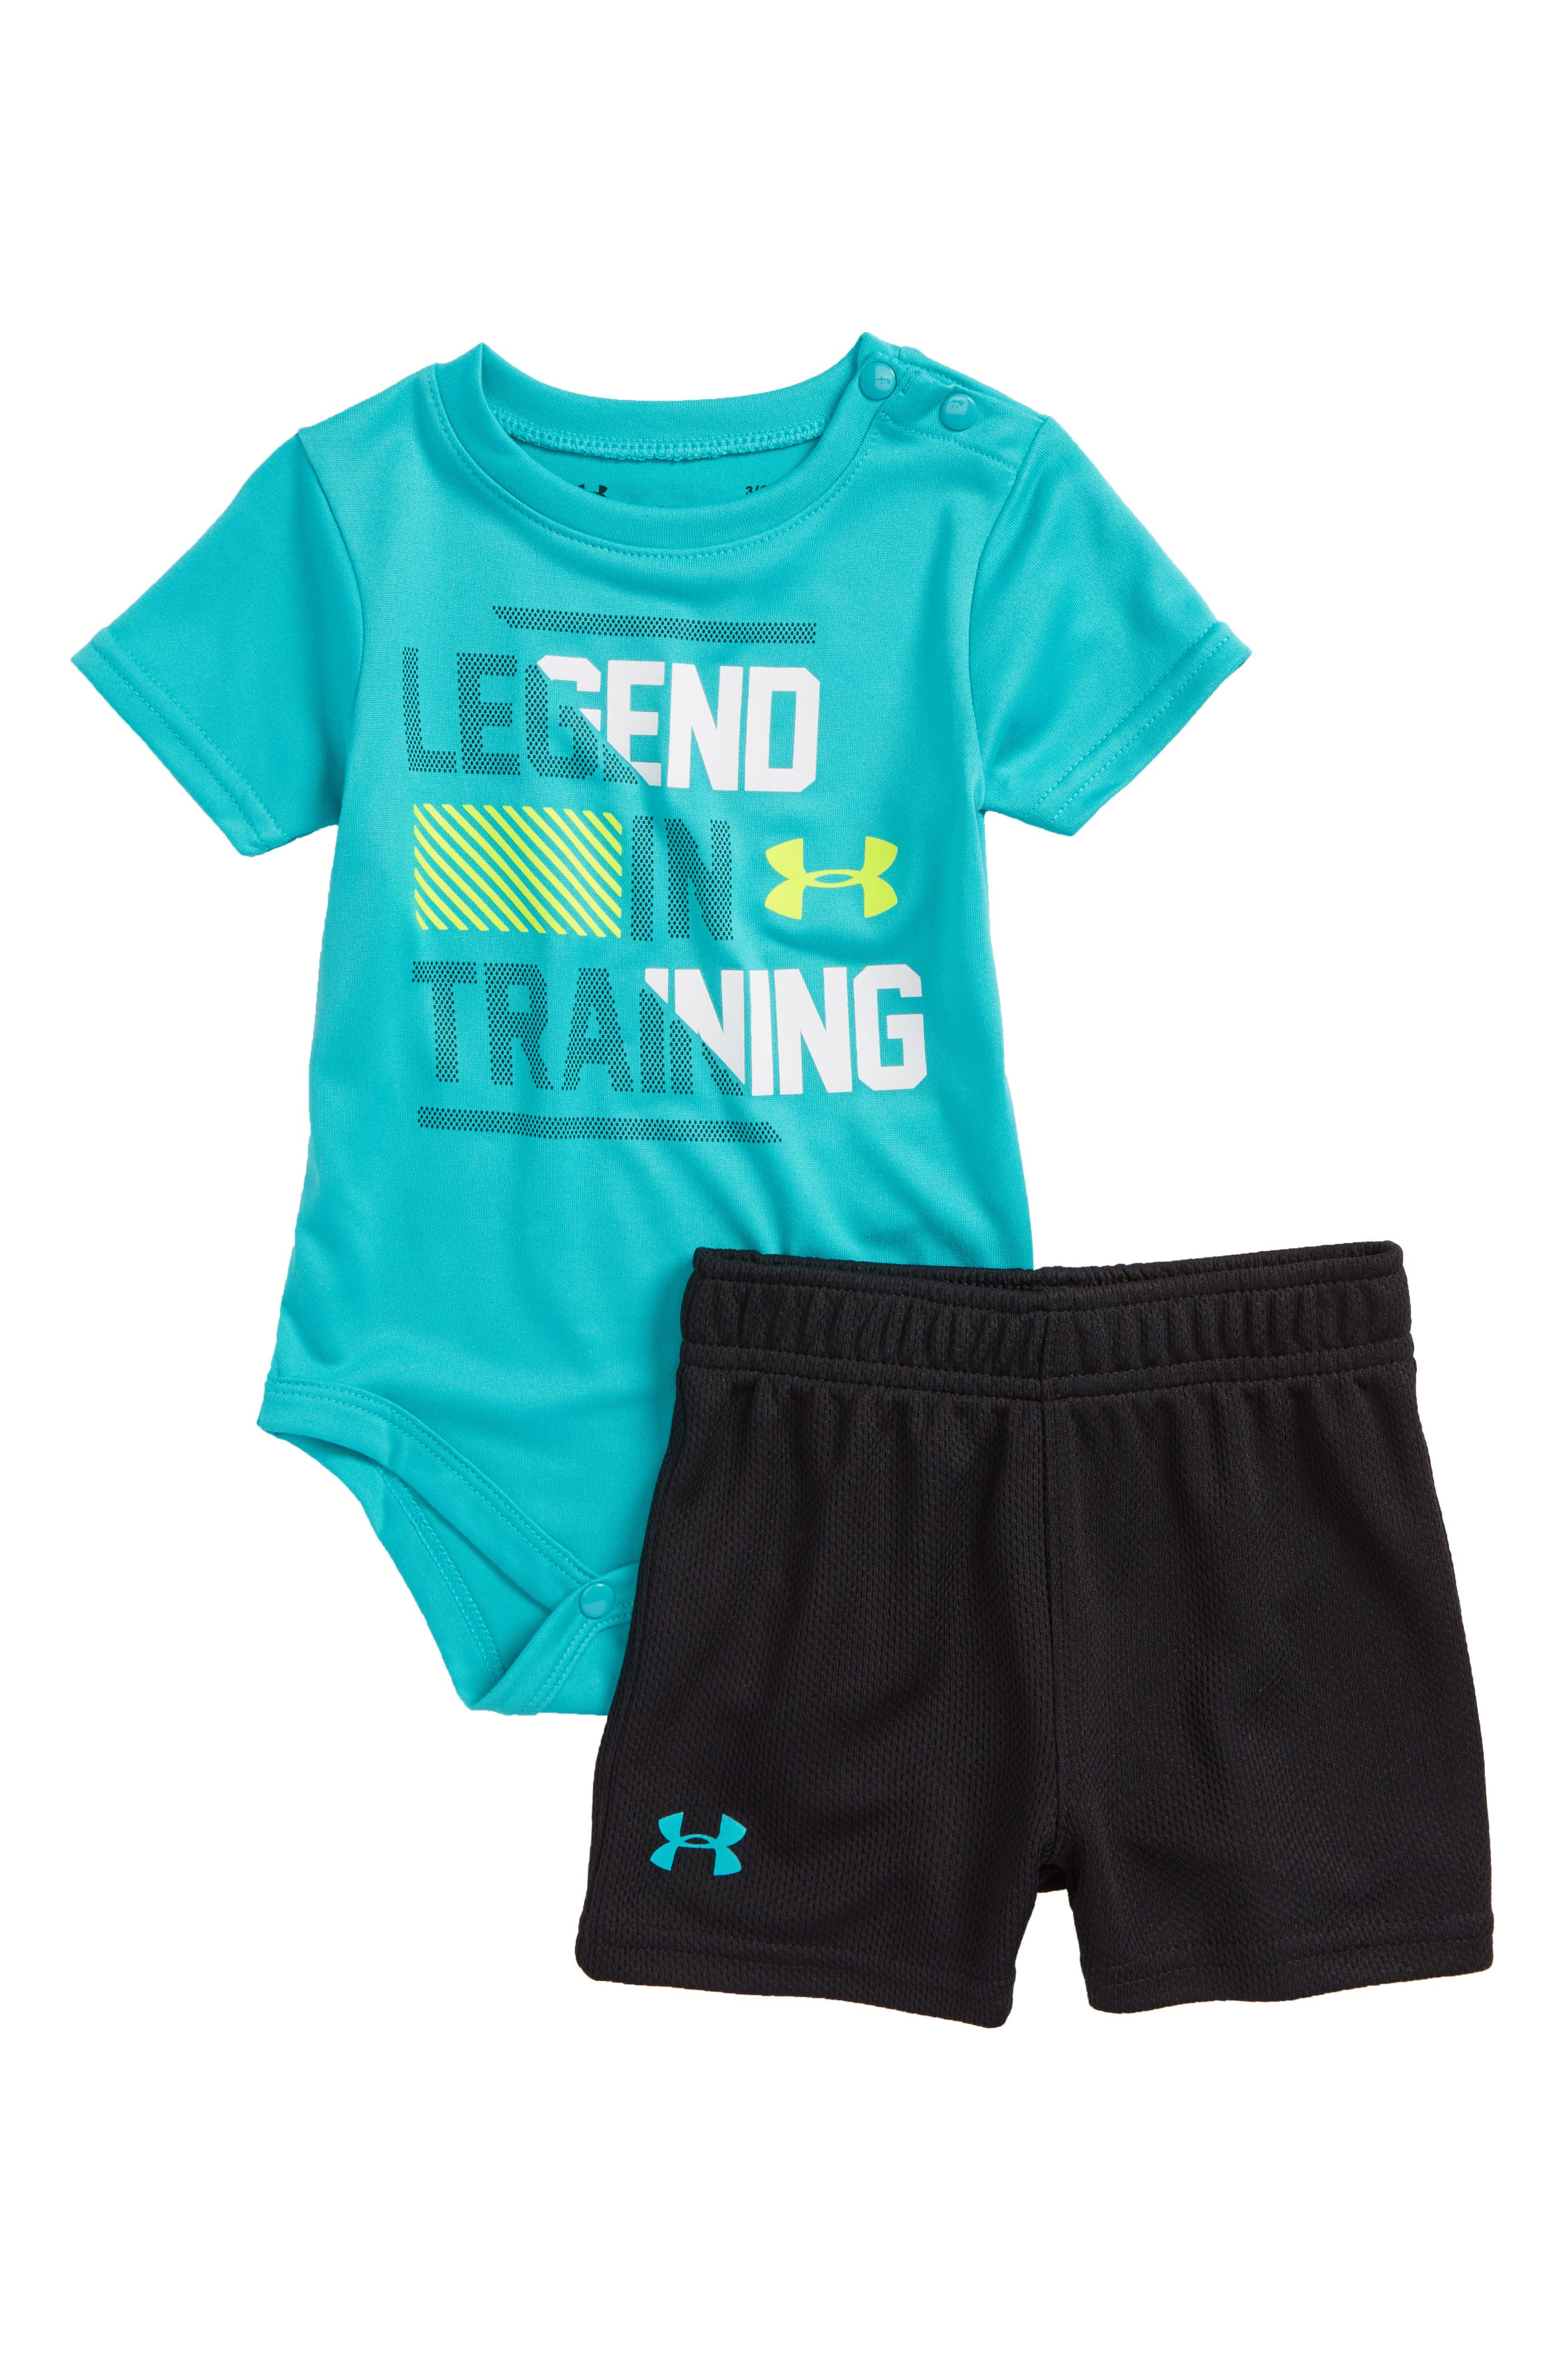 Legend in Training T-Shirt & Shorts Set,                             Main thumbnail 1, color,                             Teal Punch